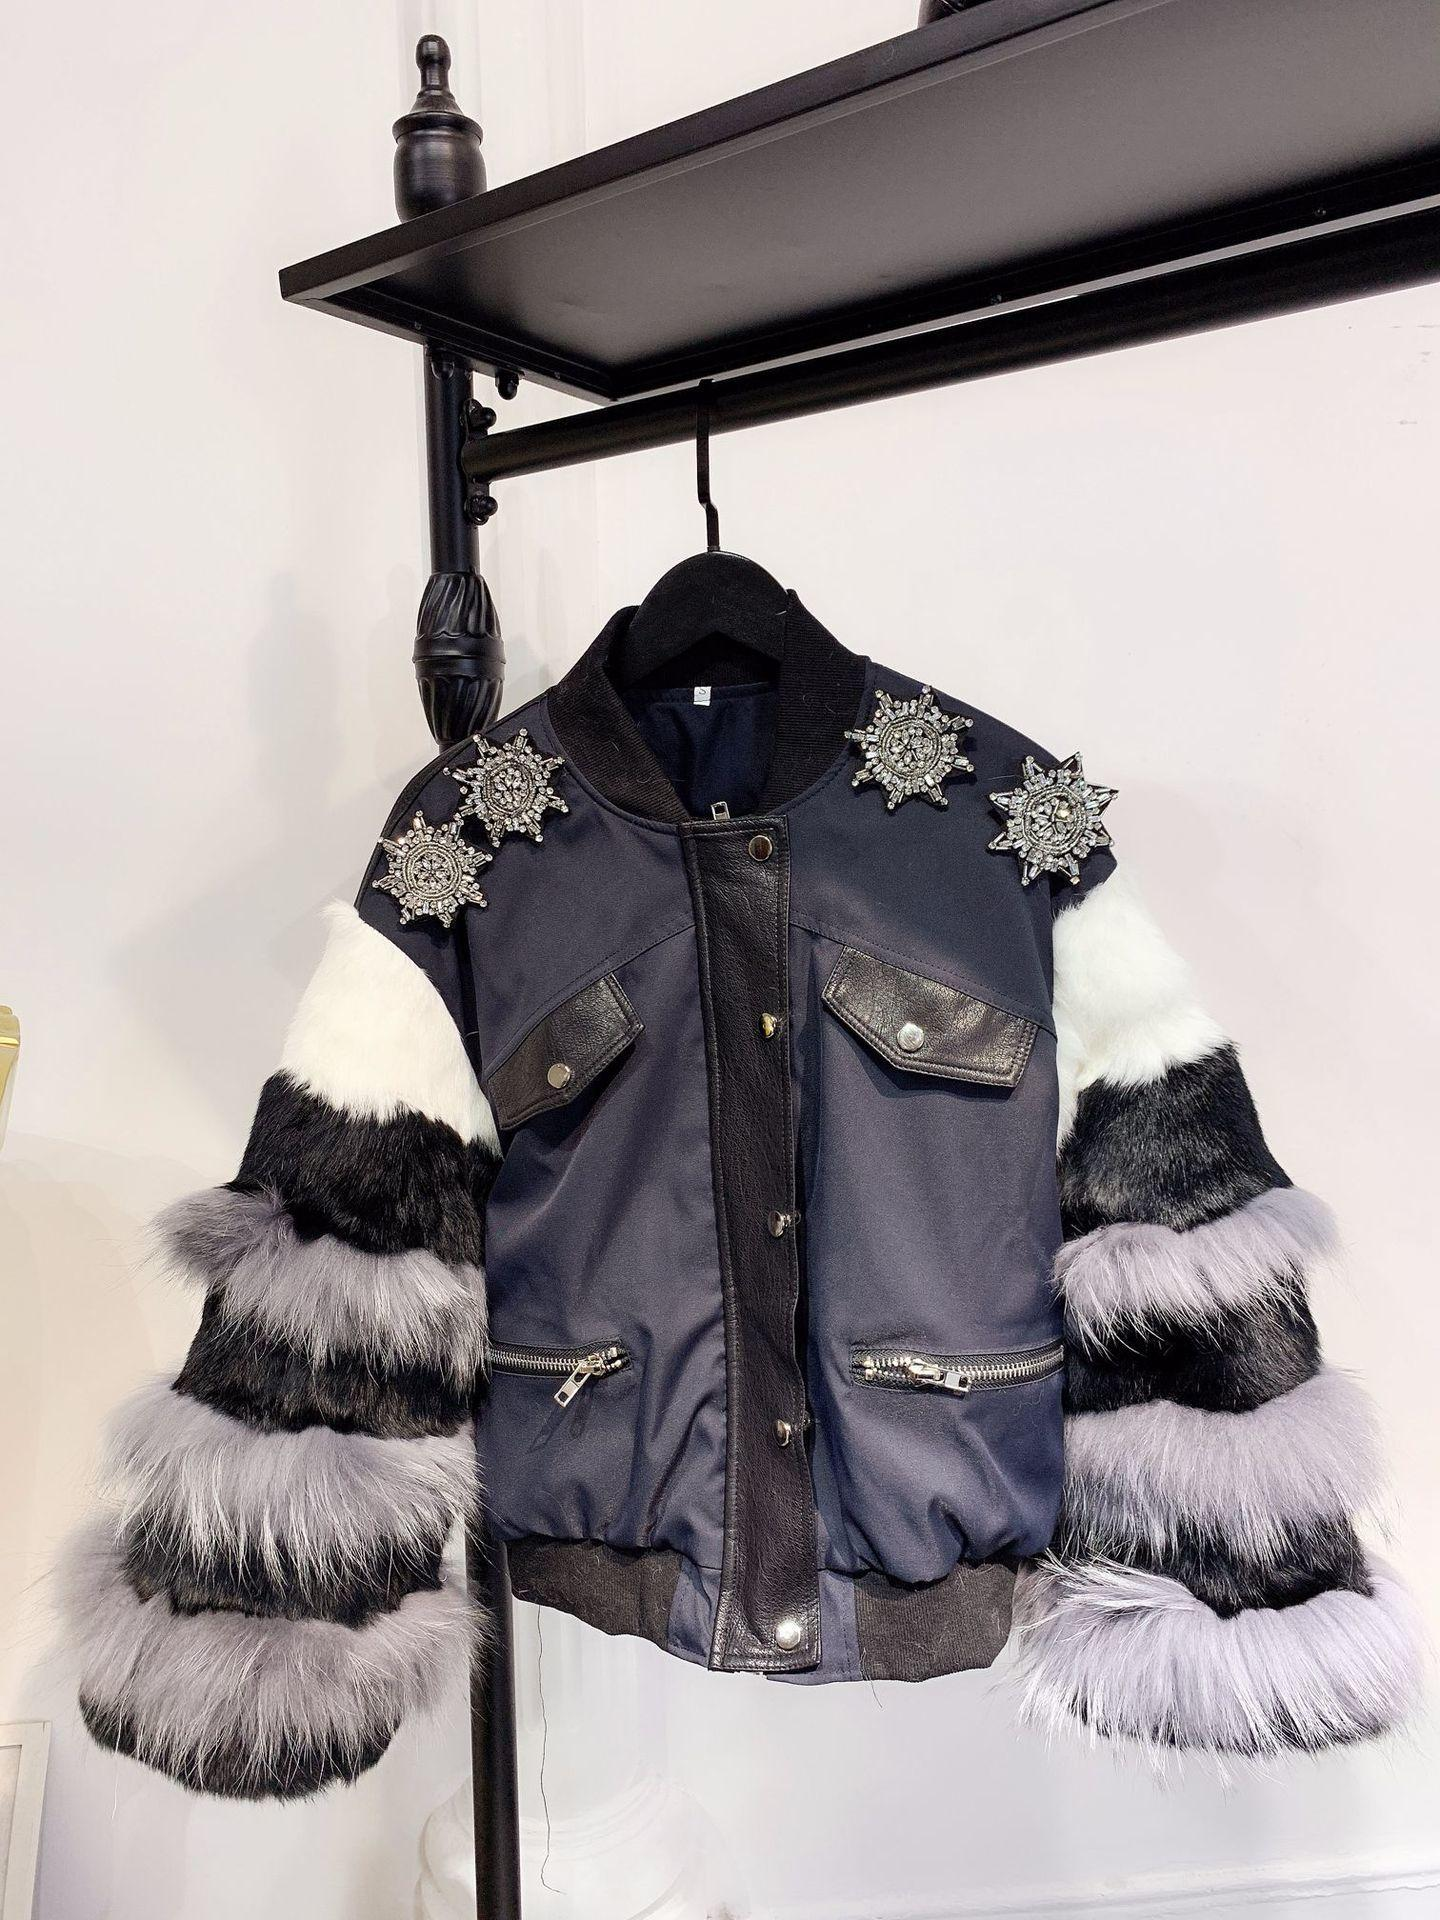 847 2018 Winter New Pattern Maomo Sleeve Splicing Spelling Skin Plus Cotton  Jacket Loose Coat Fur Jackets Parka Jackets From Dunhang08, $162.82|  DHgate.Com